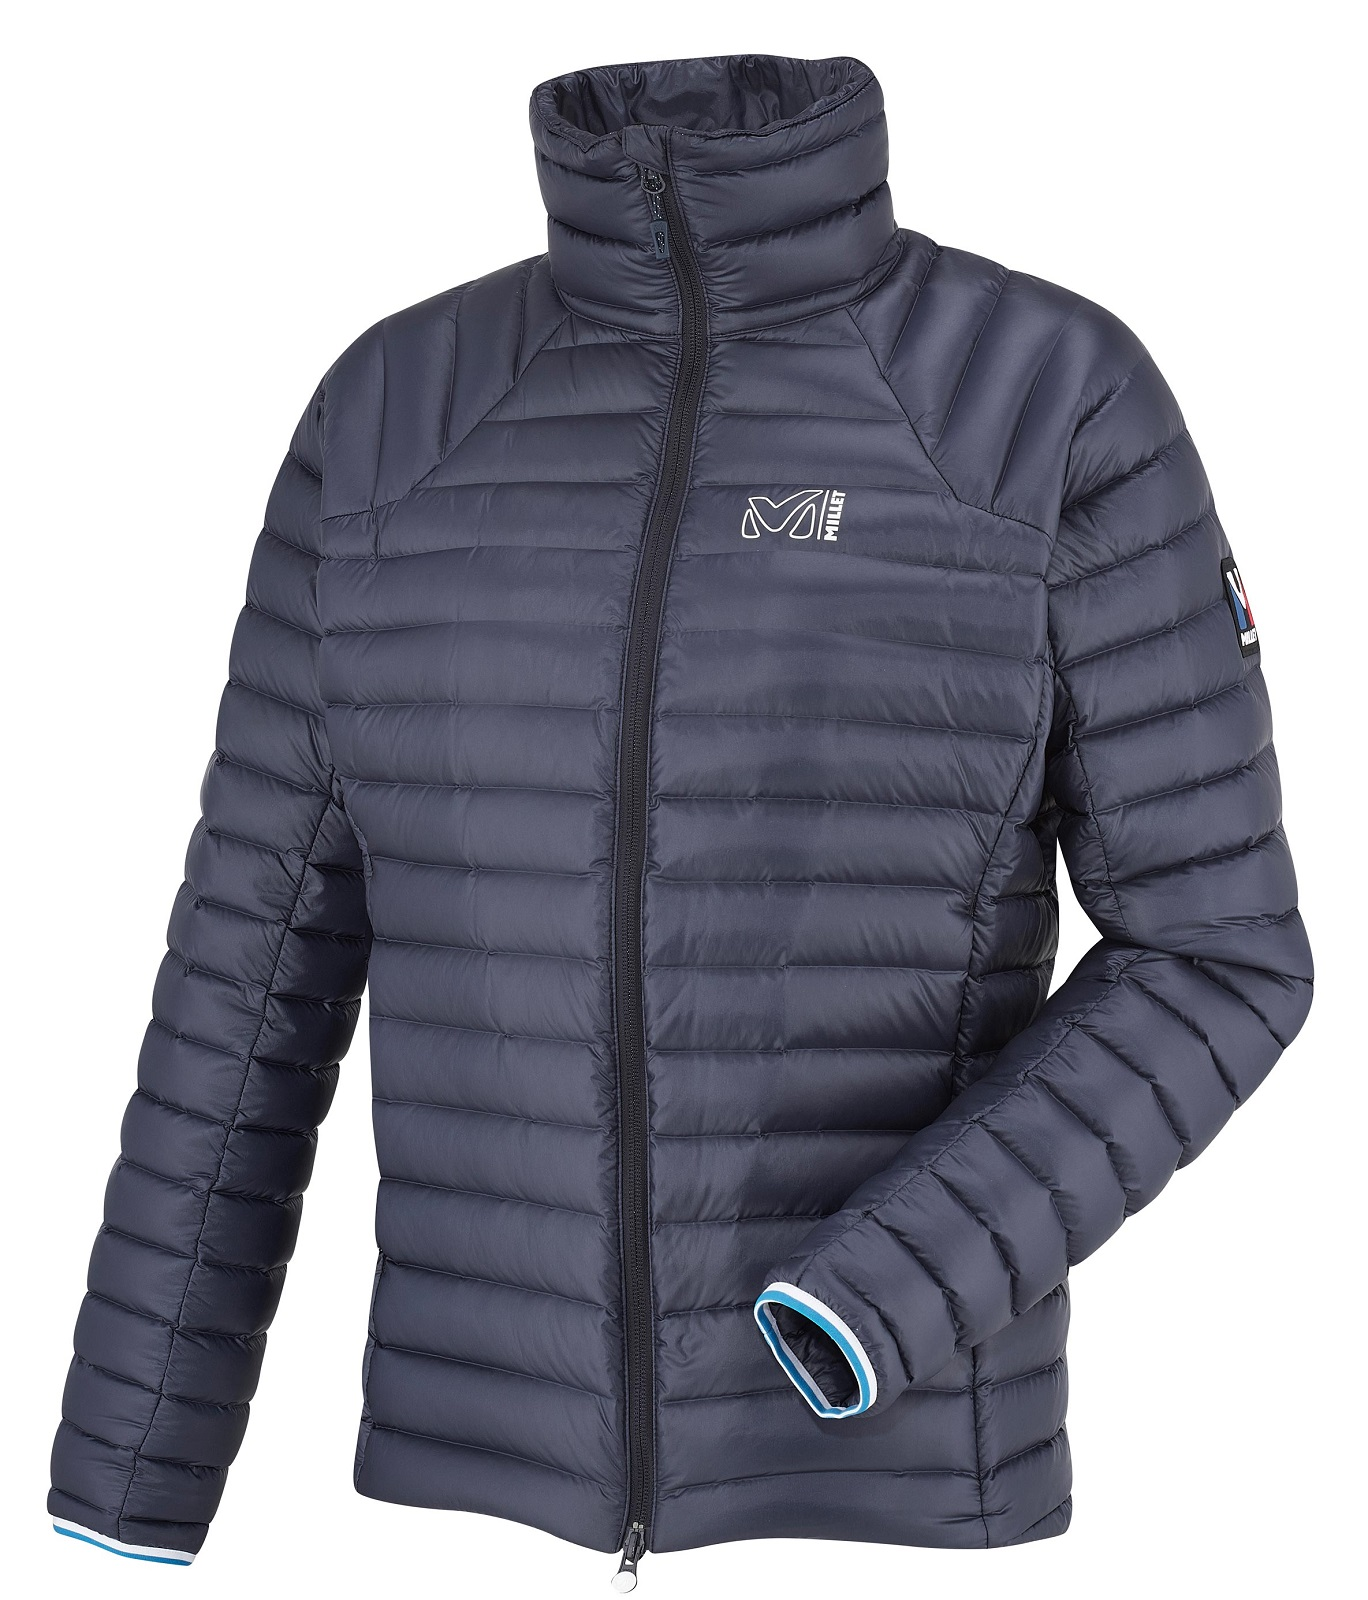 Millet Trilogy Synthesis Down Jacket Women